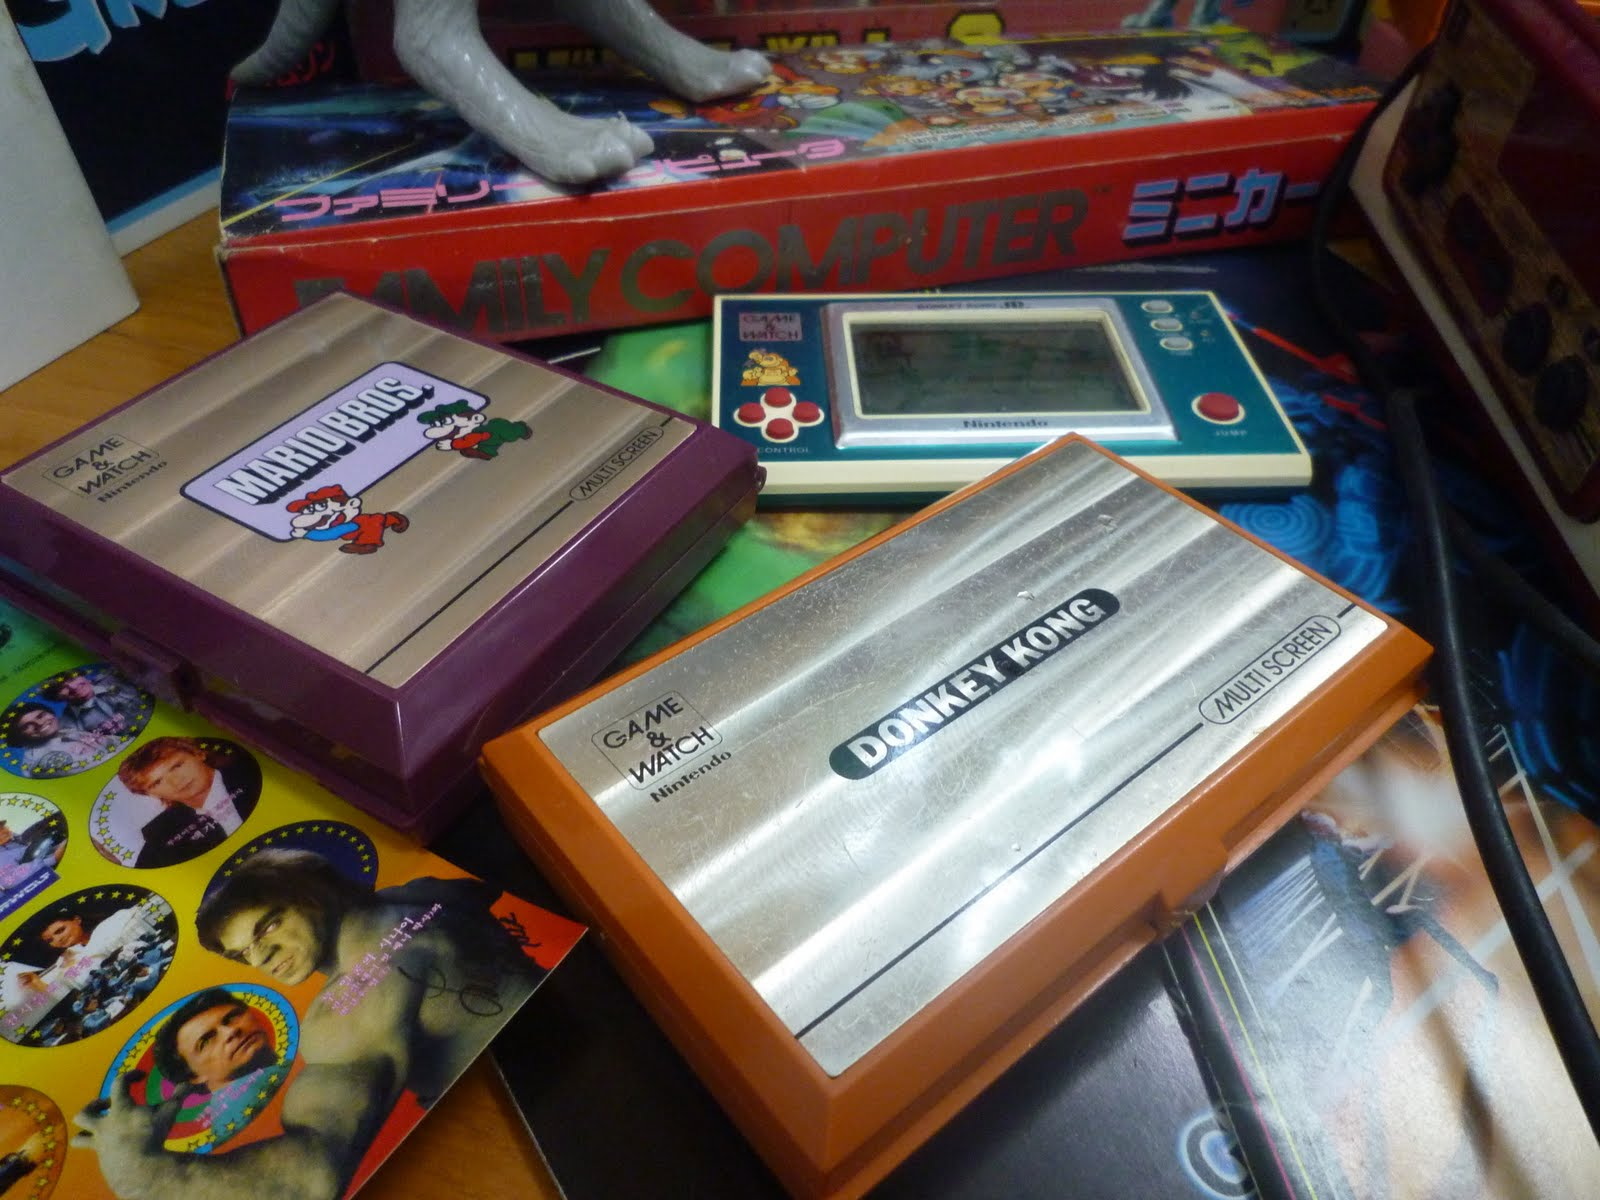 80s Nostalgia And The Appeal Of Retro Gaming